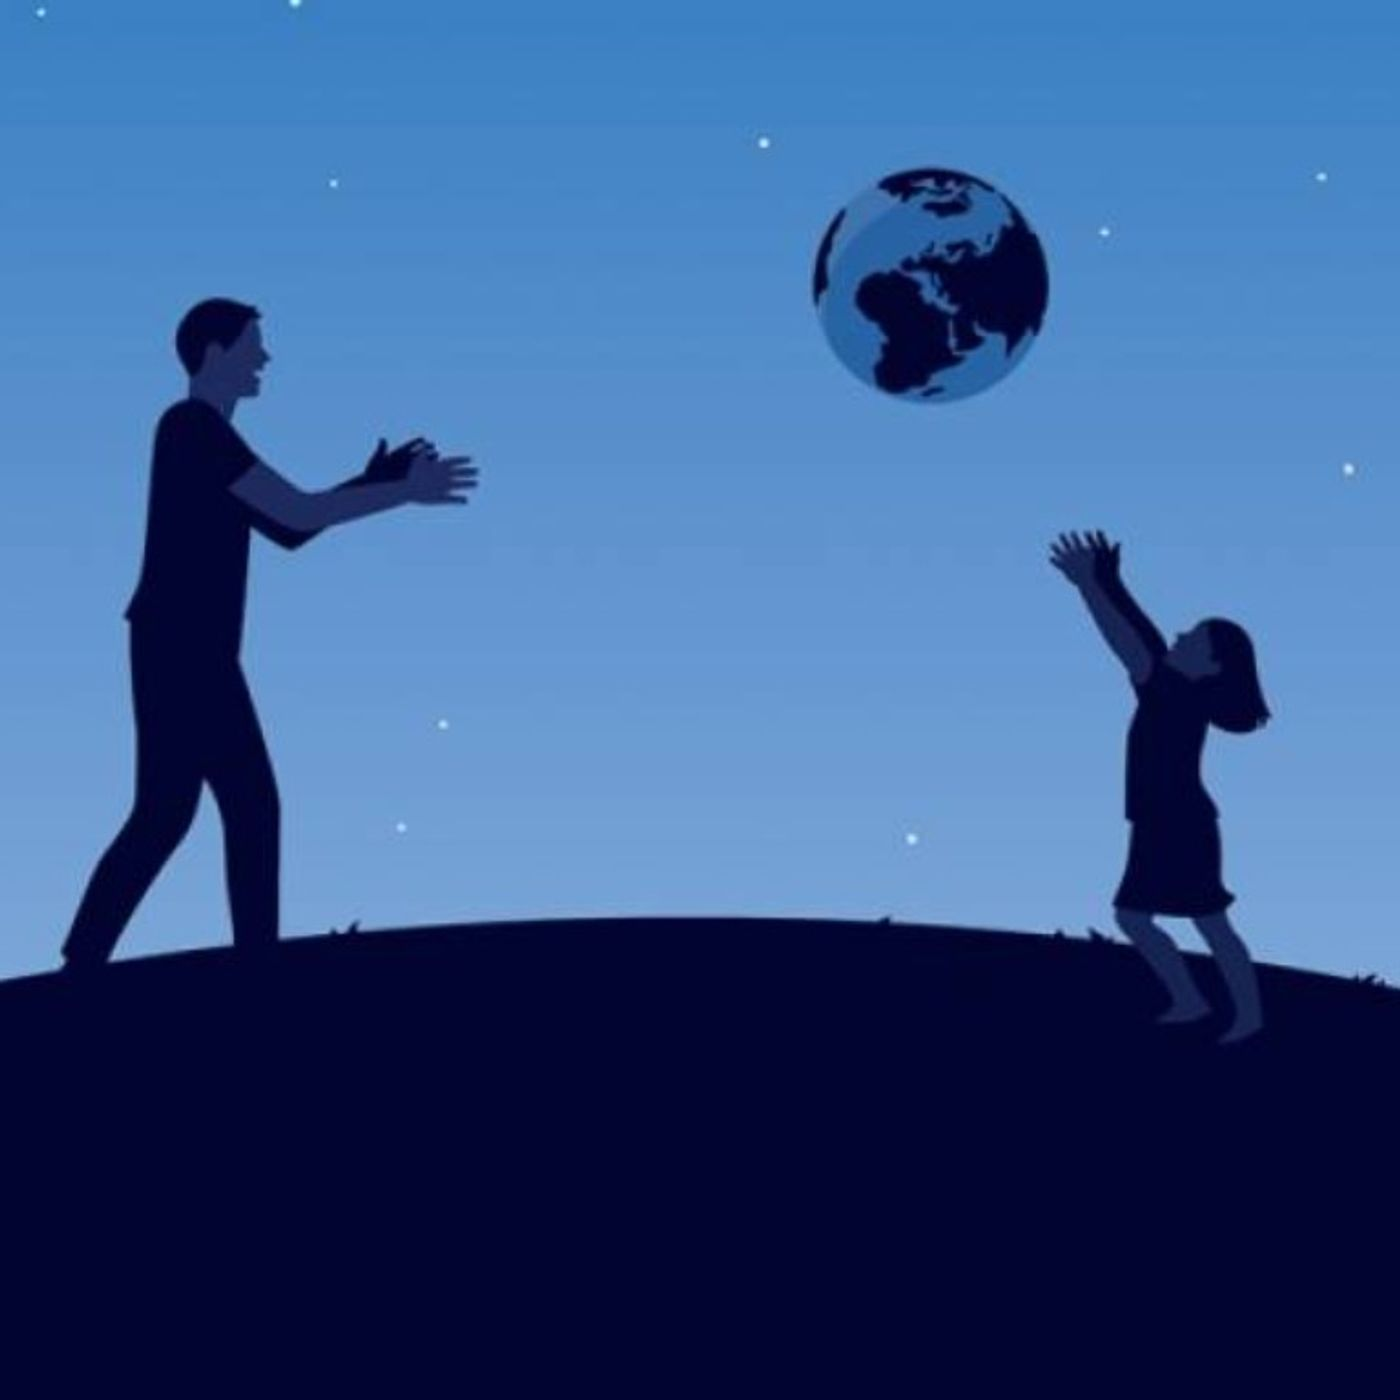 POLICY AND PRACTICE - Protecting Future Generations